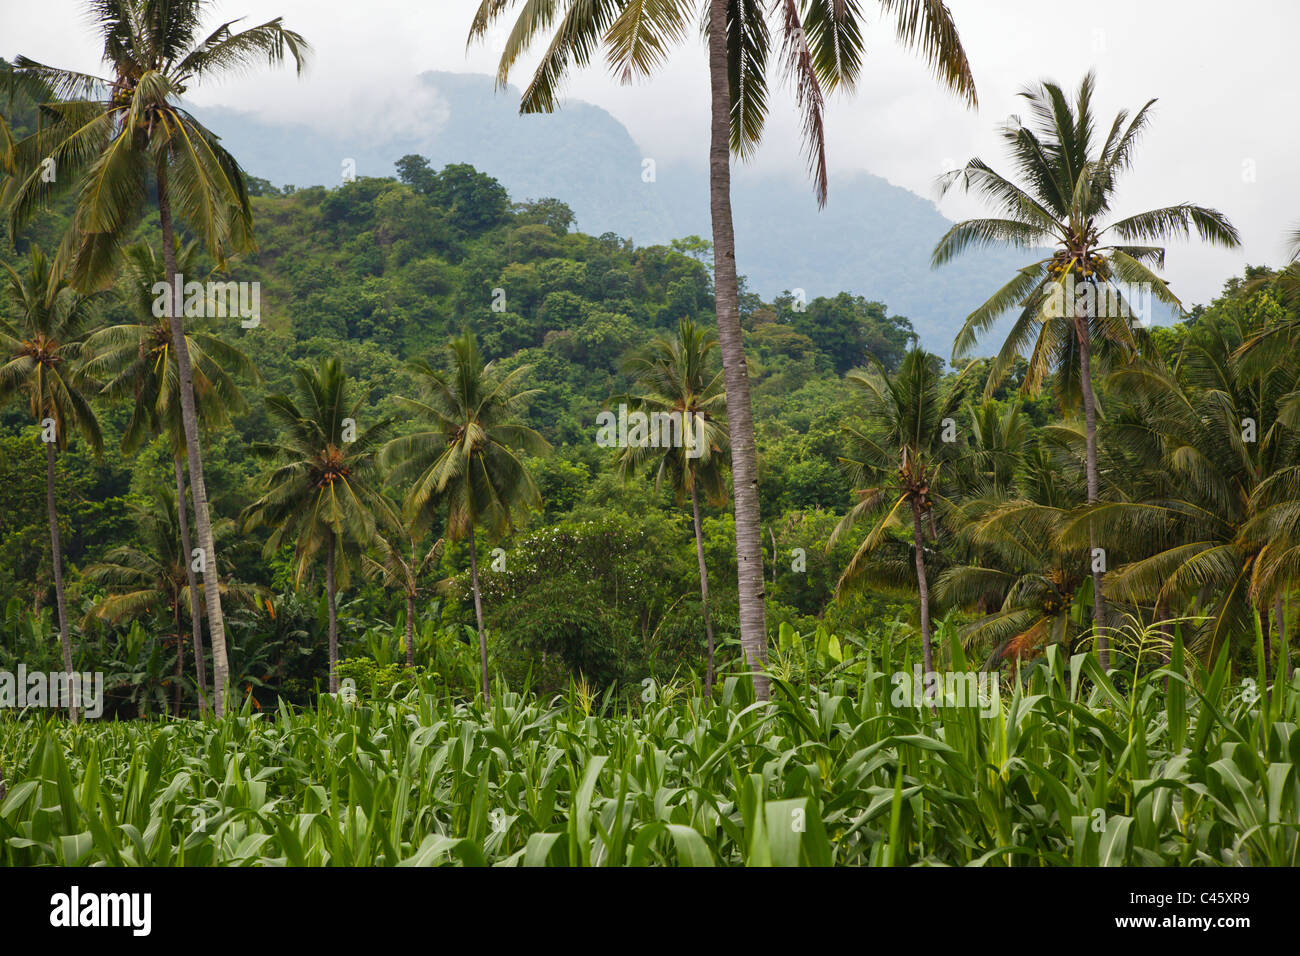 CORN and COCONUT TREES grow in a rich agriculture valley near PEMUTERAN - BALI, INDONESIA - Stock Image